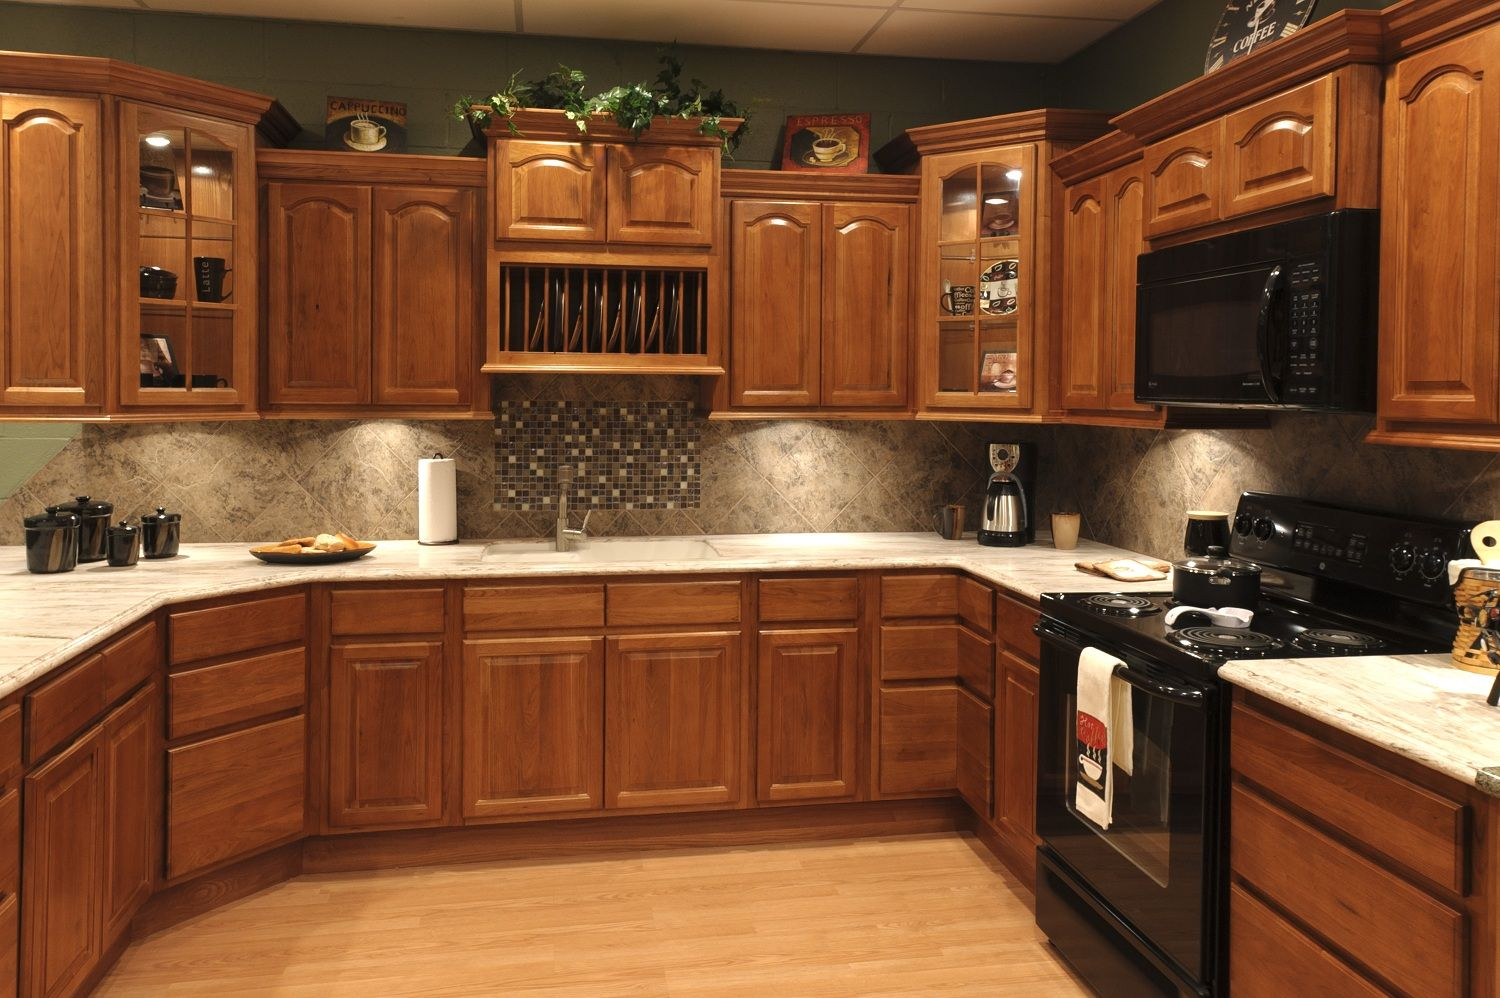 Hickory Cathedral Kitchen Cabinets Hickory Kitchen Cabinets Hickory Kitchen Wooden Kitchen Cabinets